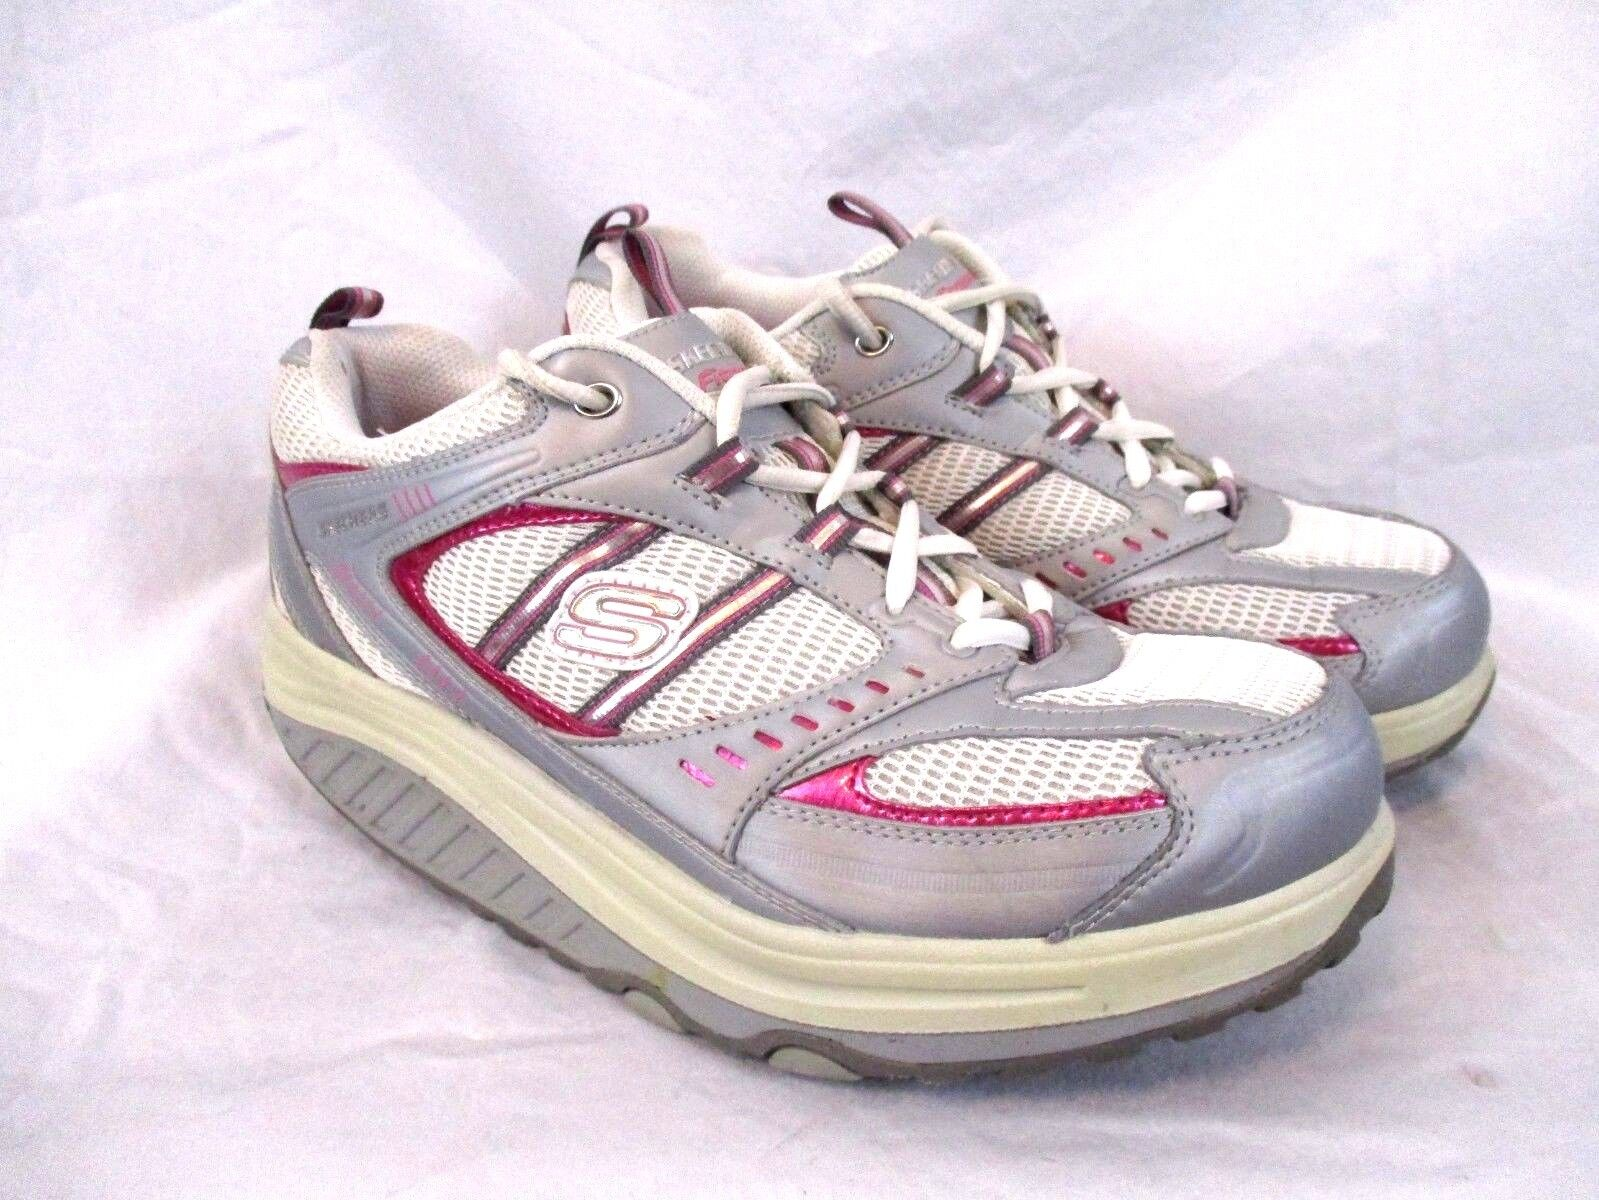 Sketchers Fitness Shape Ups Womens Walking Toning Sneakers Sz 9.5 White Pink SS1